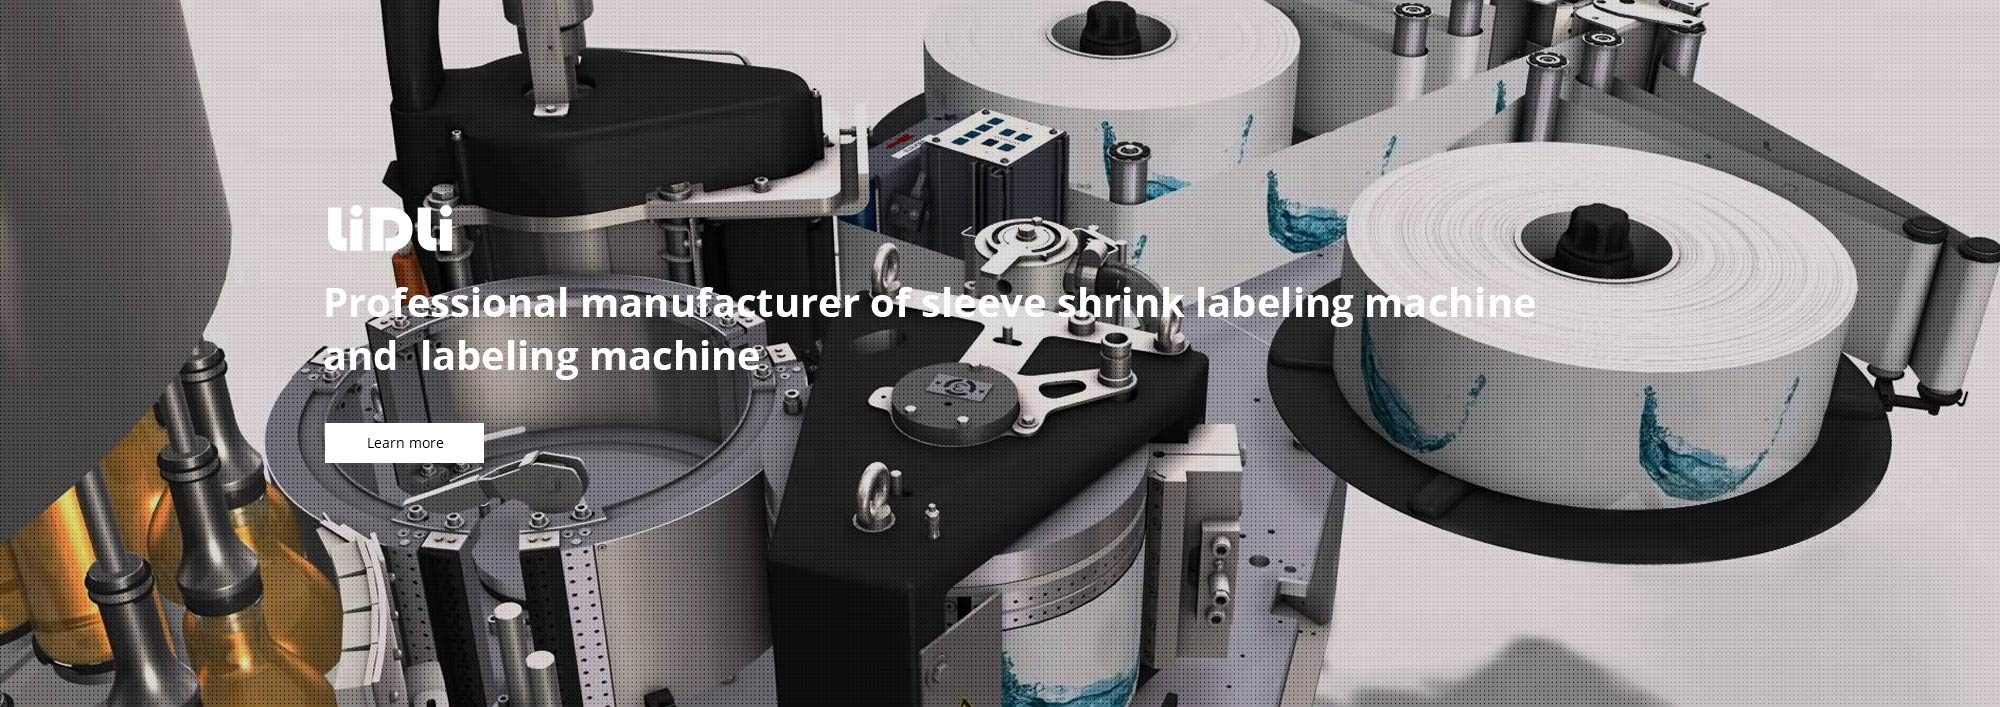 Professional manufacturer of sleeve shrink labeling machine and labeling machine